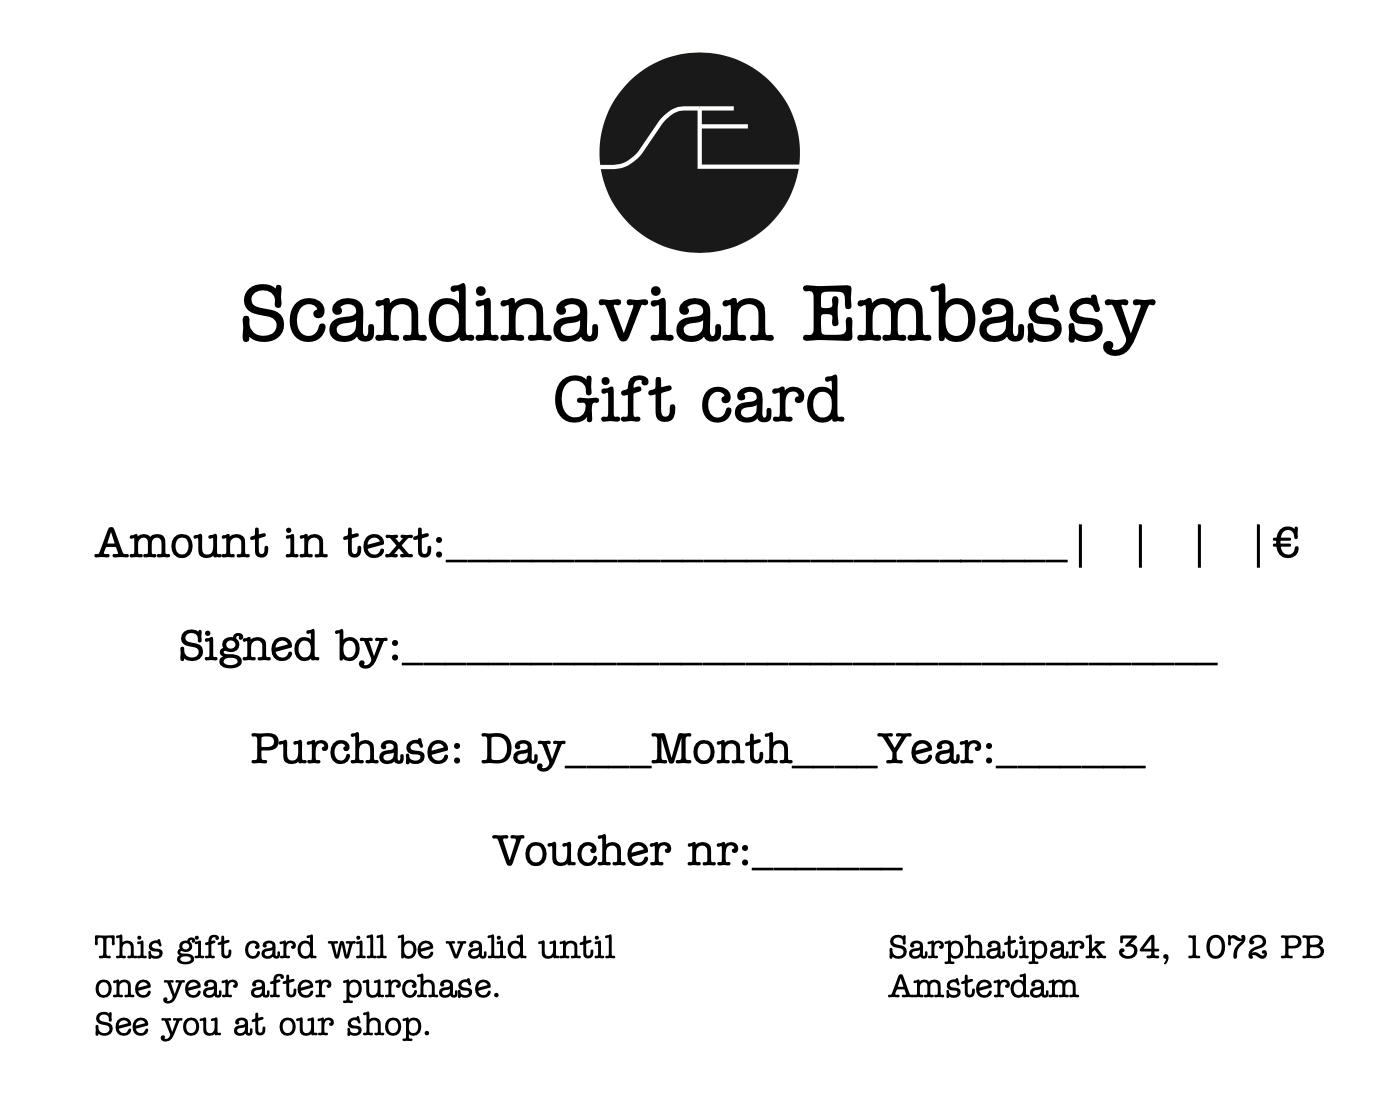 Scandinavian Embassy's Gift Card.